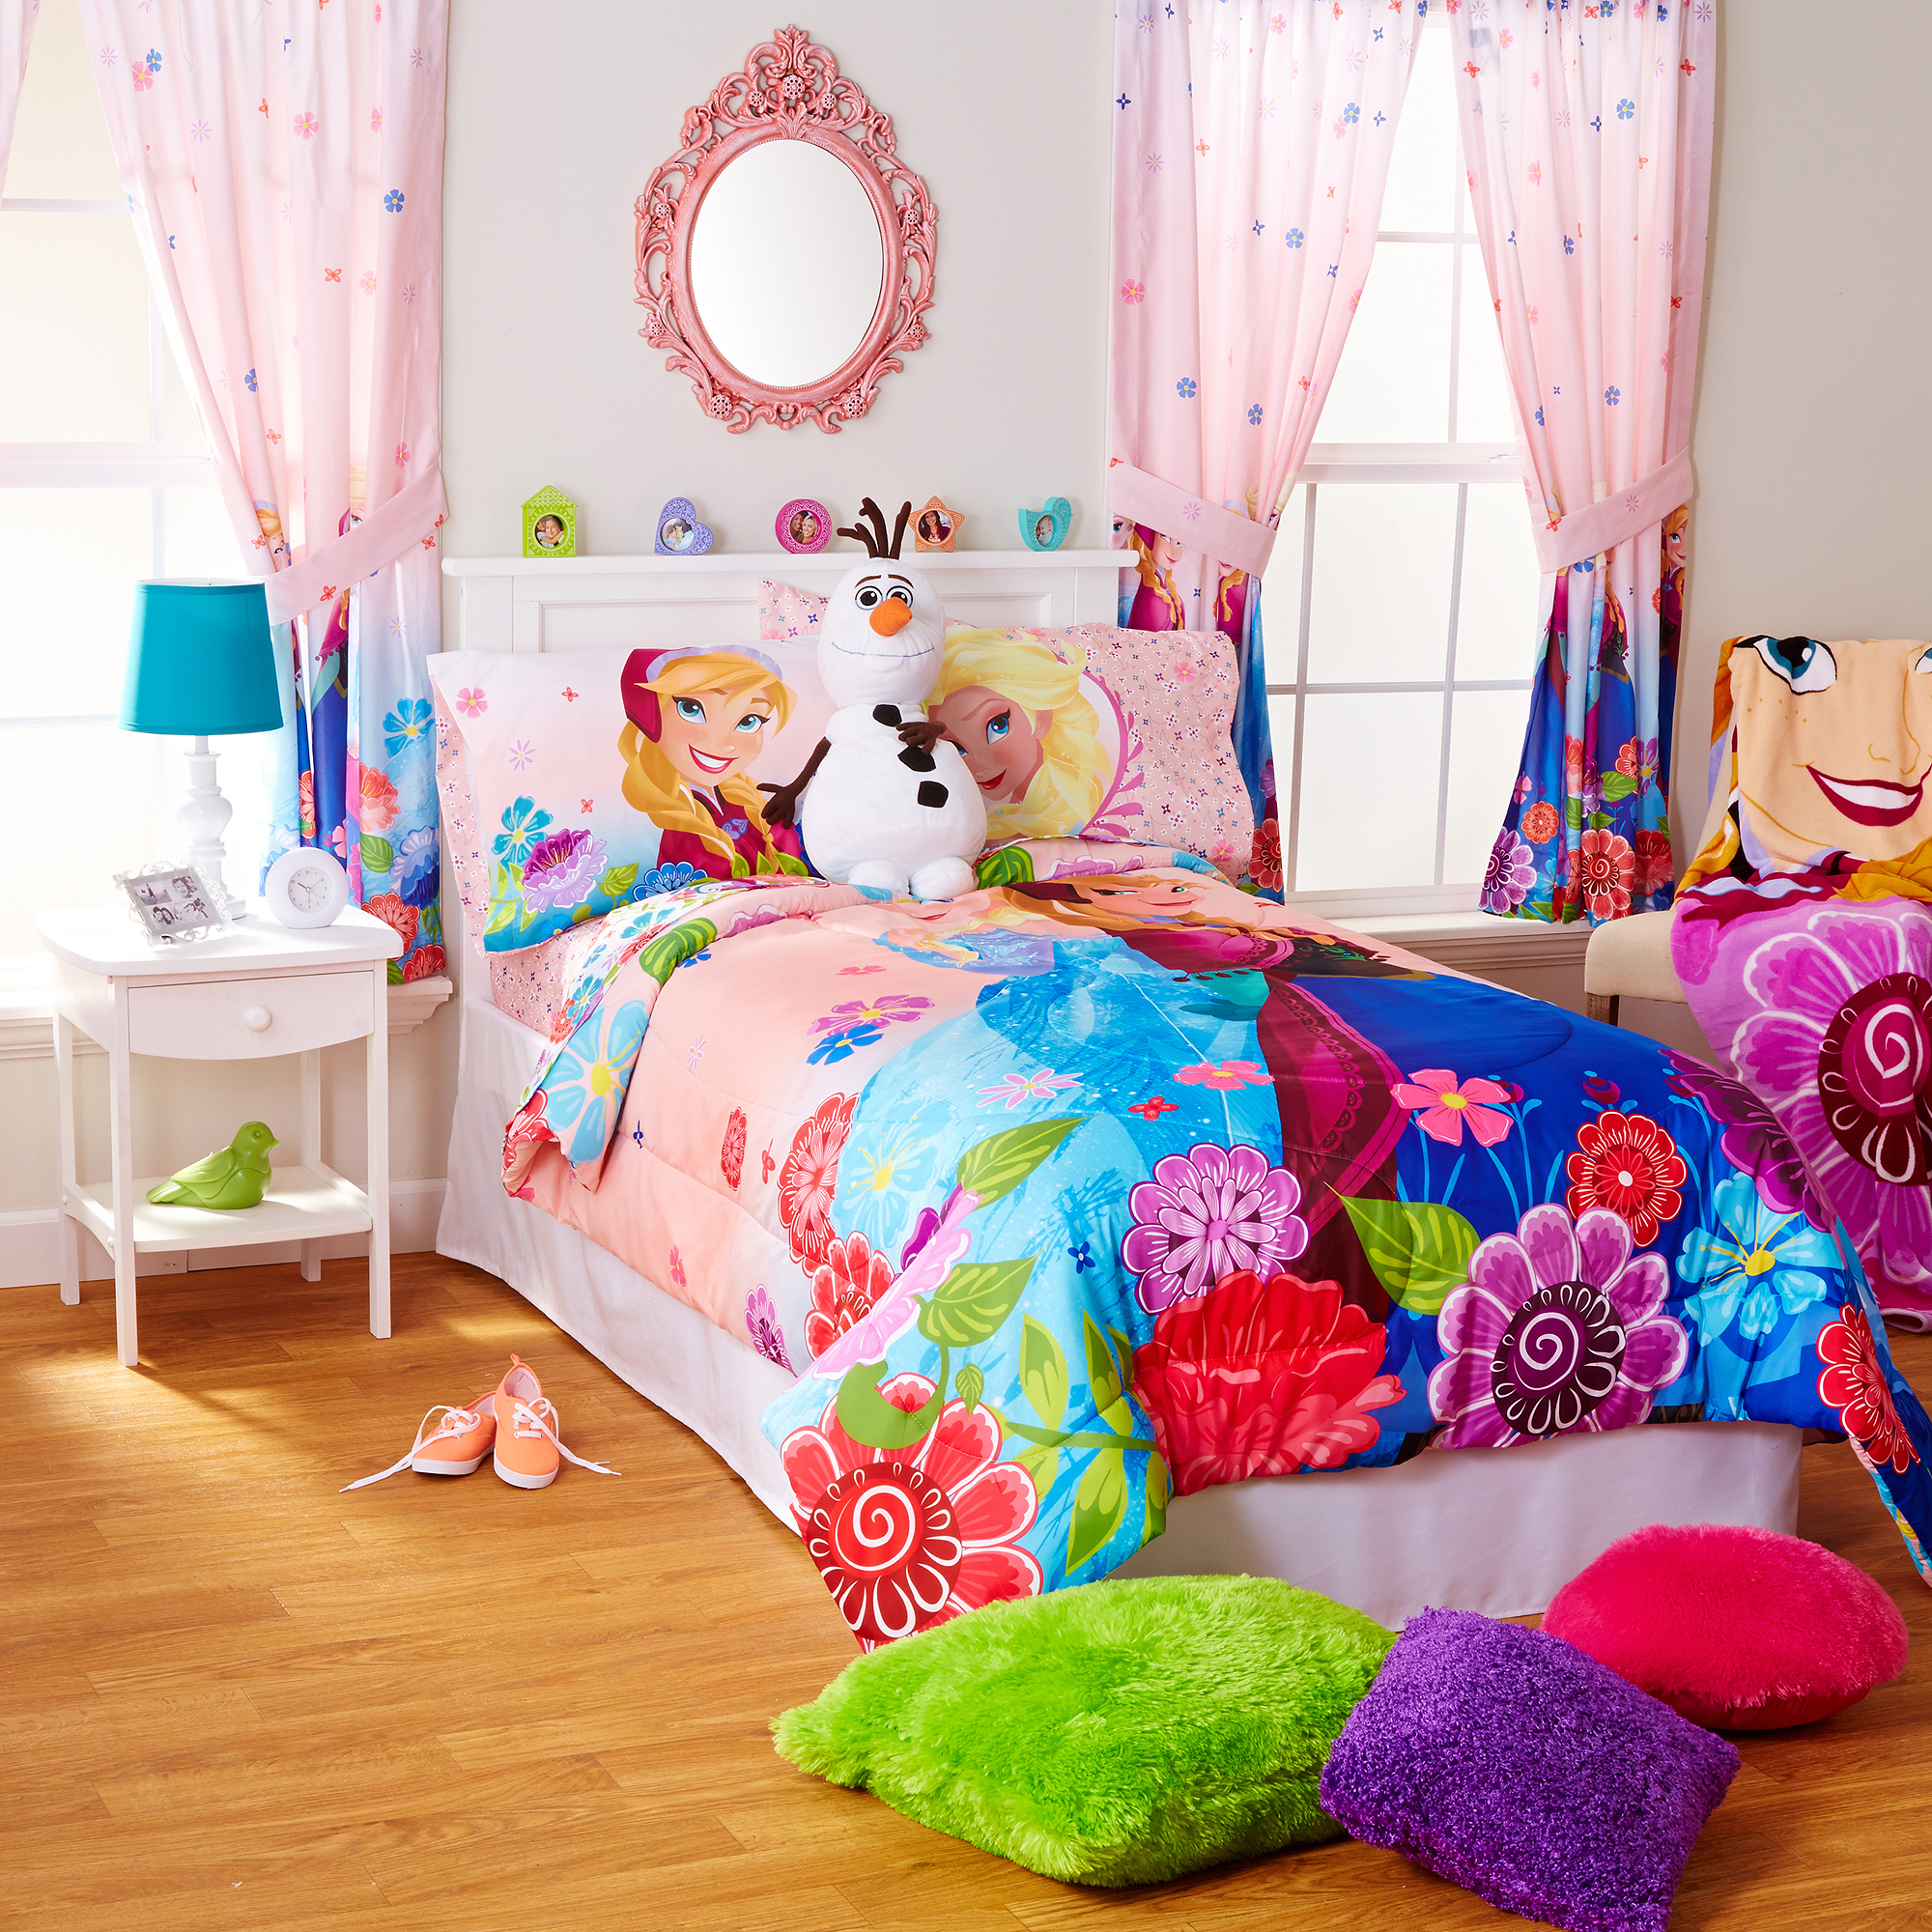 Delicieux Disney Frozen Floral Breeze Sheet Set, Pink   Walmart.com